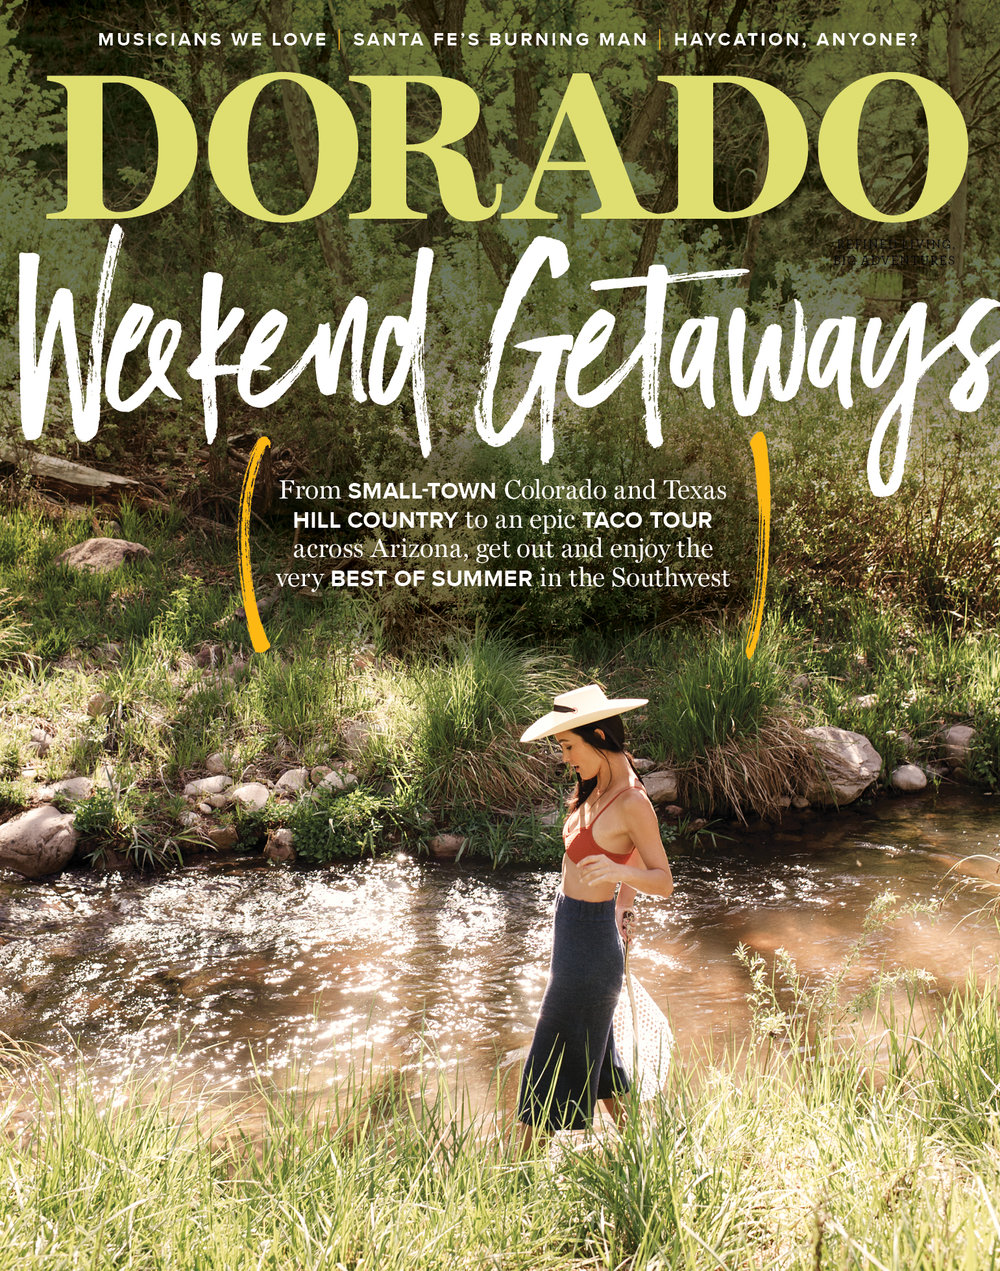 Dorado Magazine July 2016 Issue